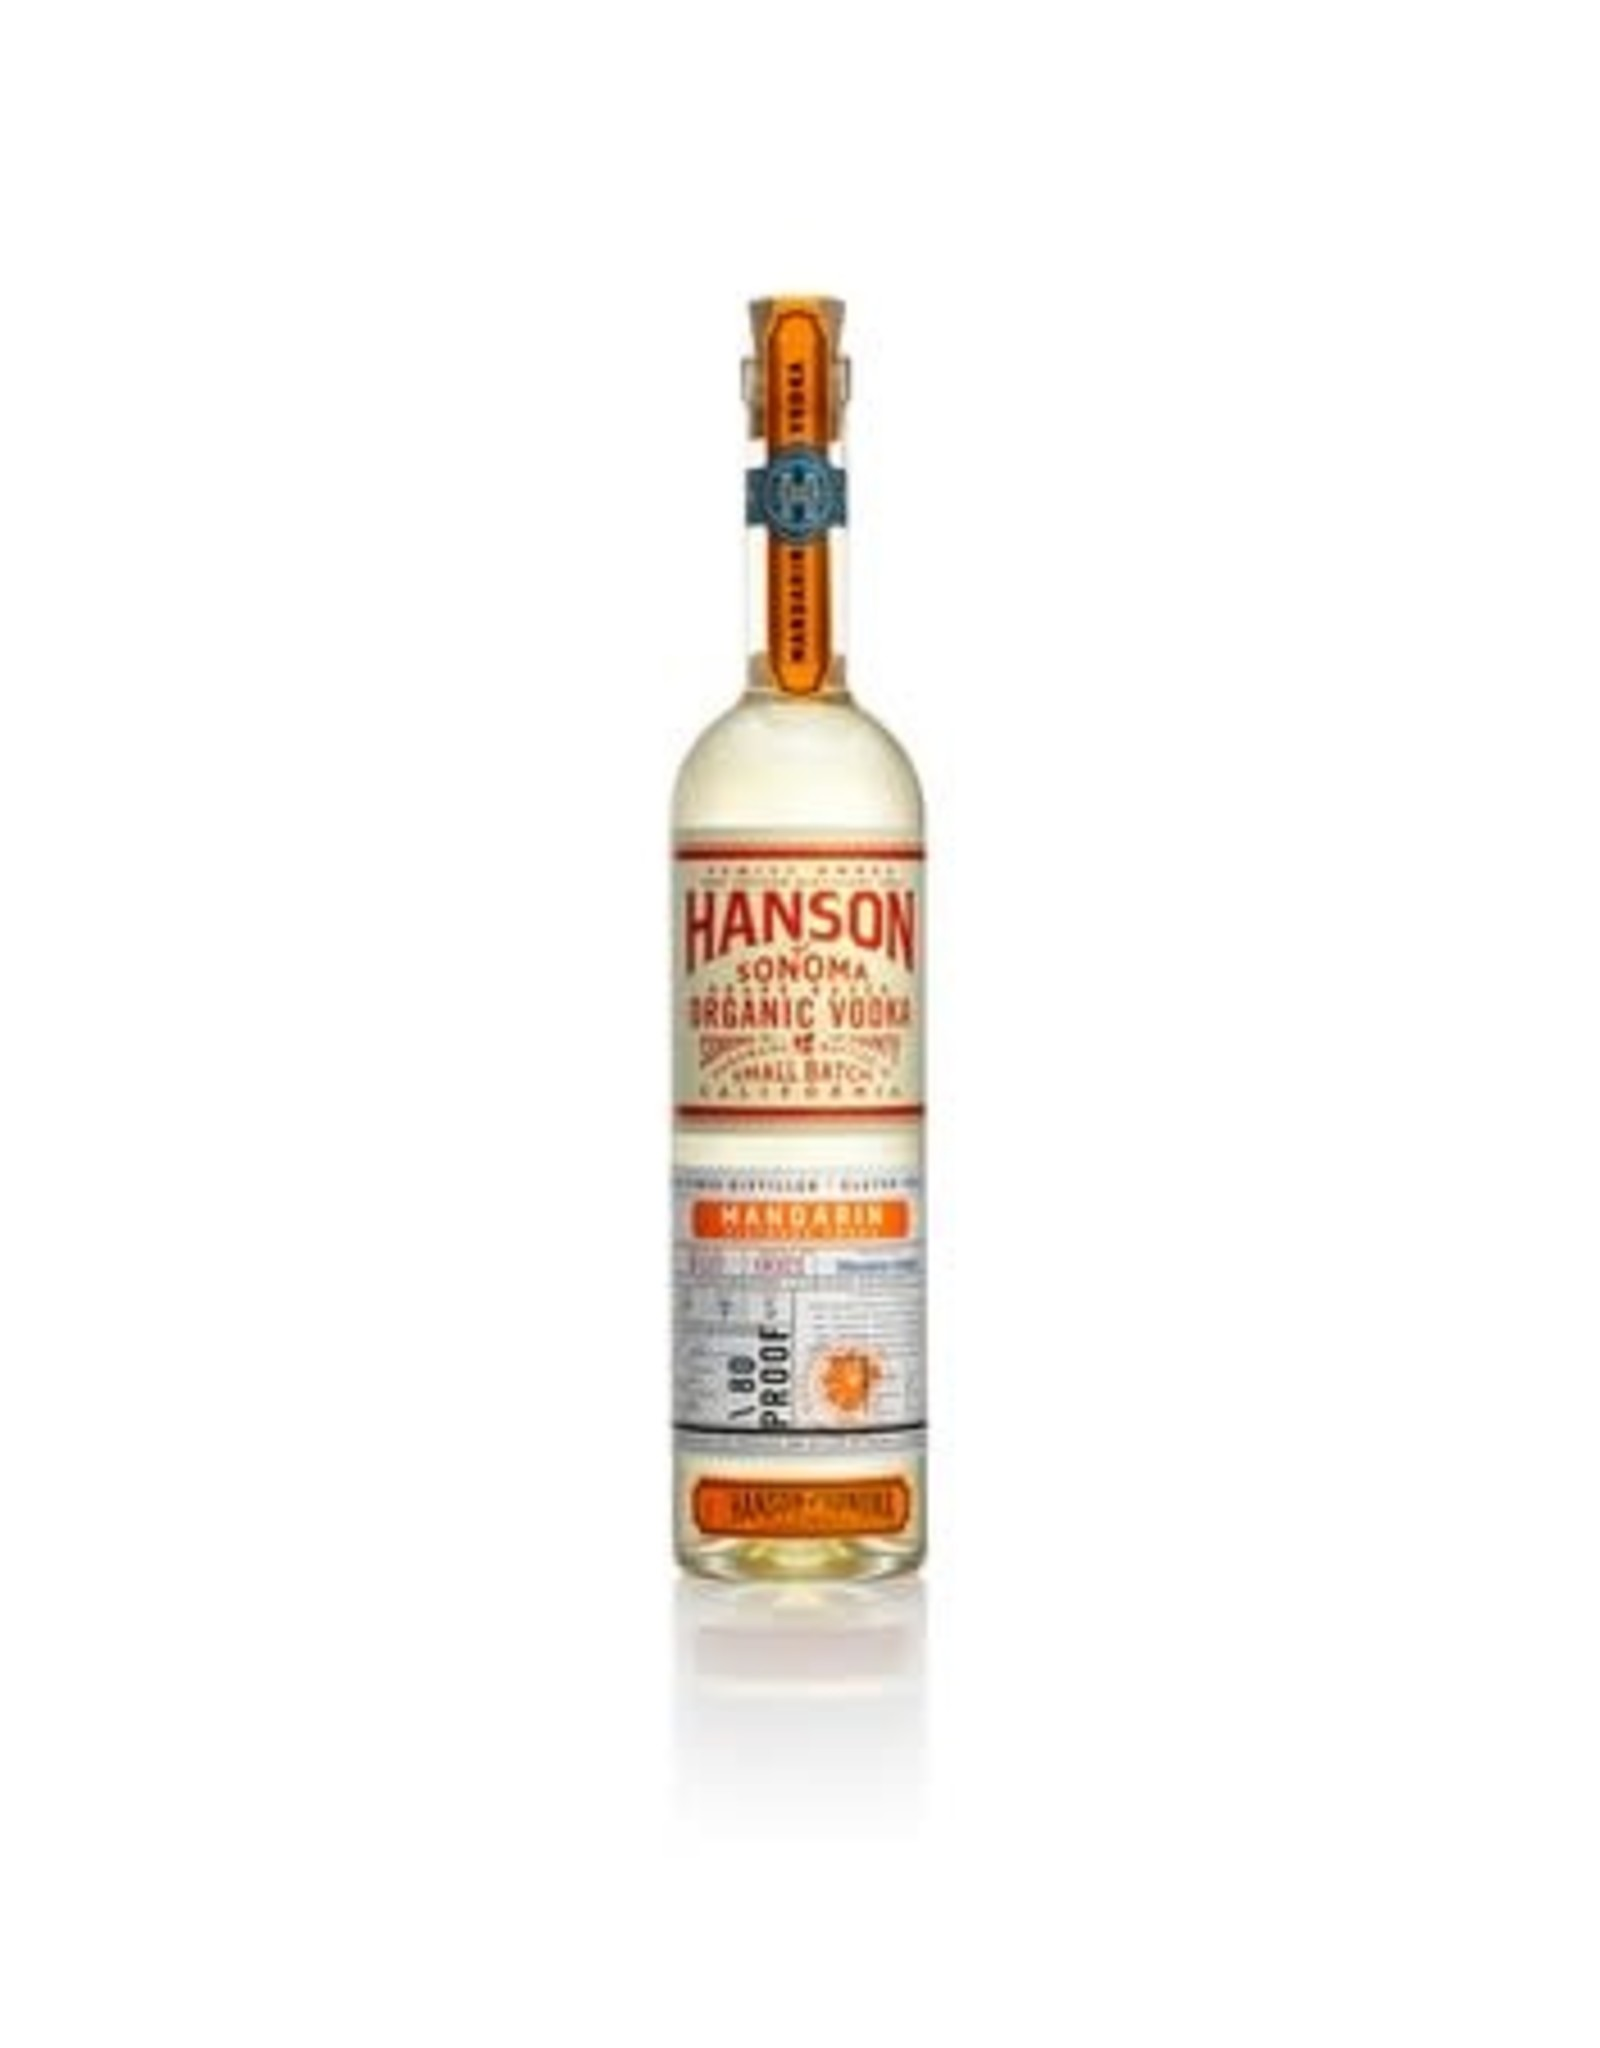 Hanson Mandarin Orange Vodka